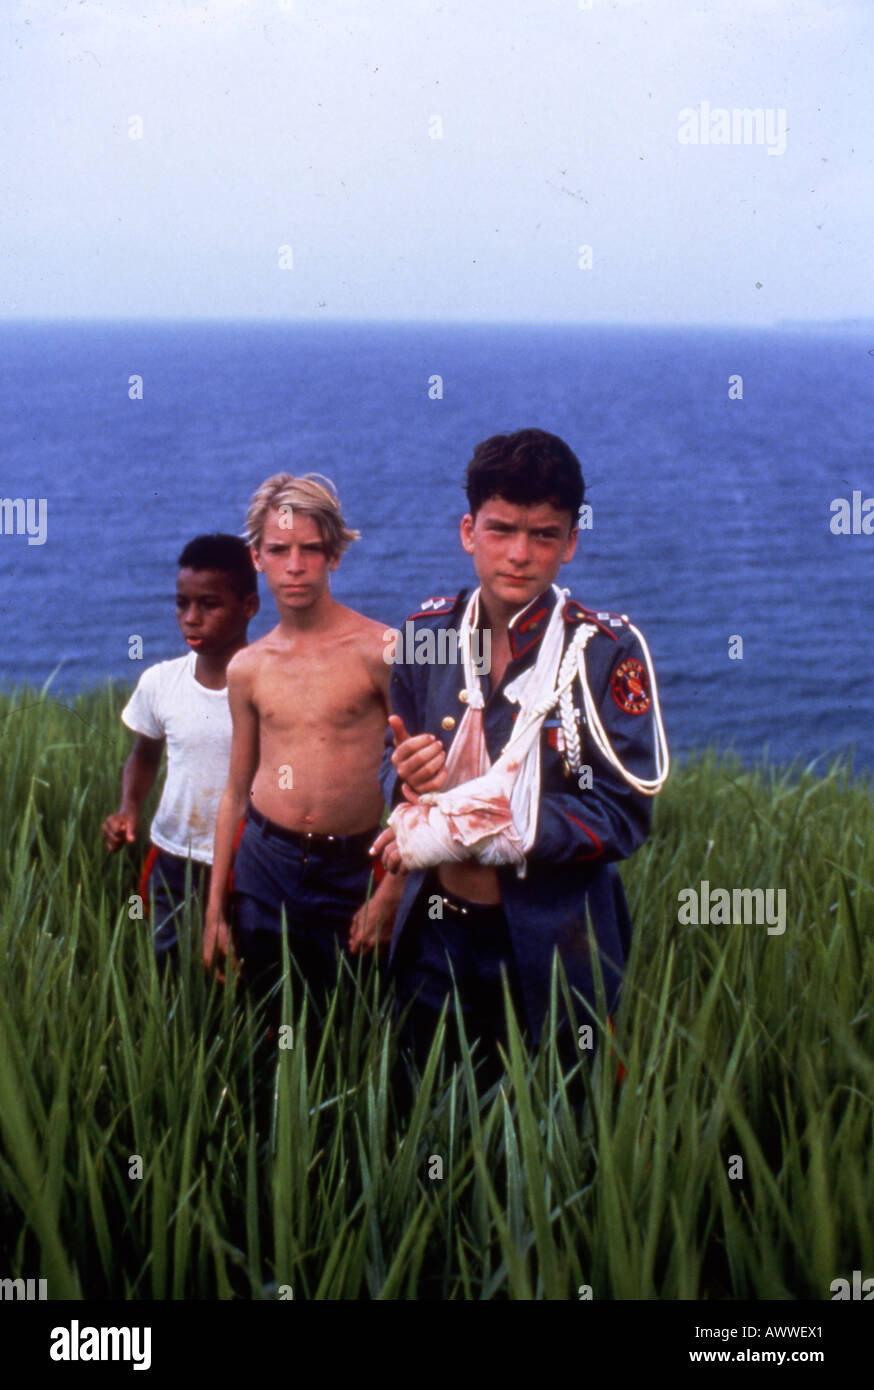 LORD OF THE FLIES 1990 Columbia film with Balthazar Getty at right - Stock Image